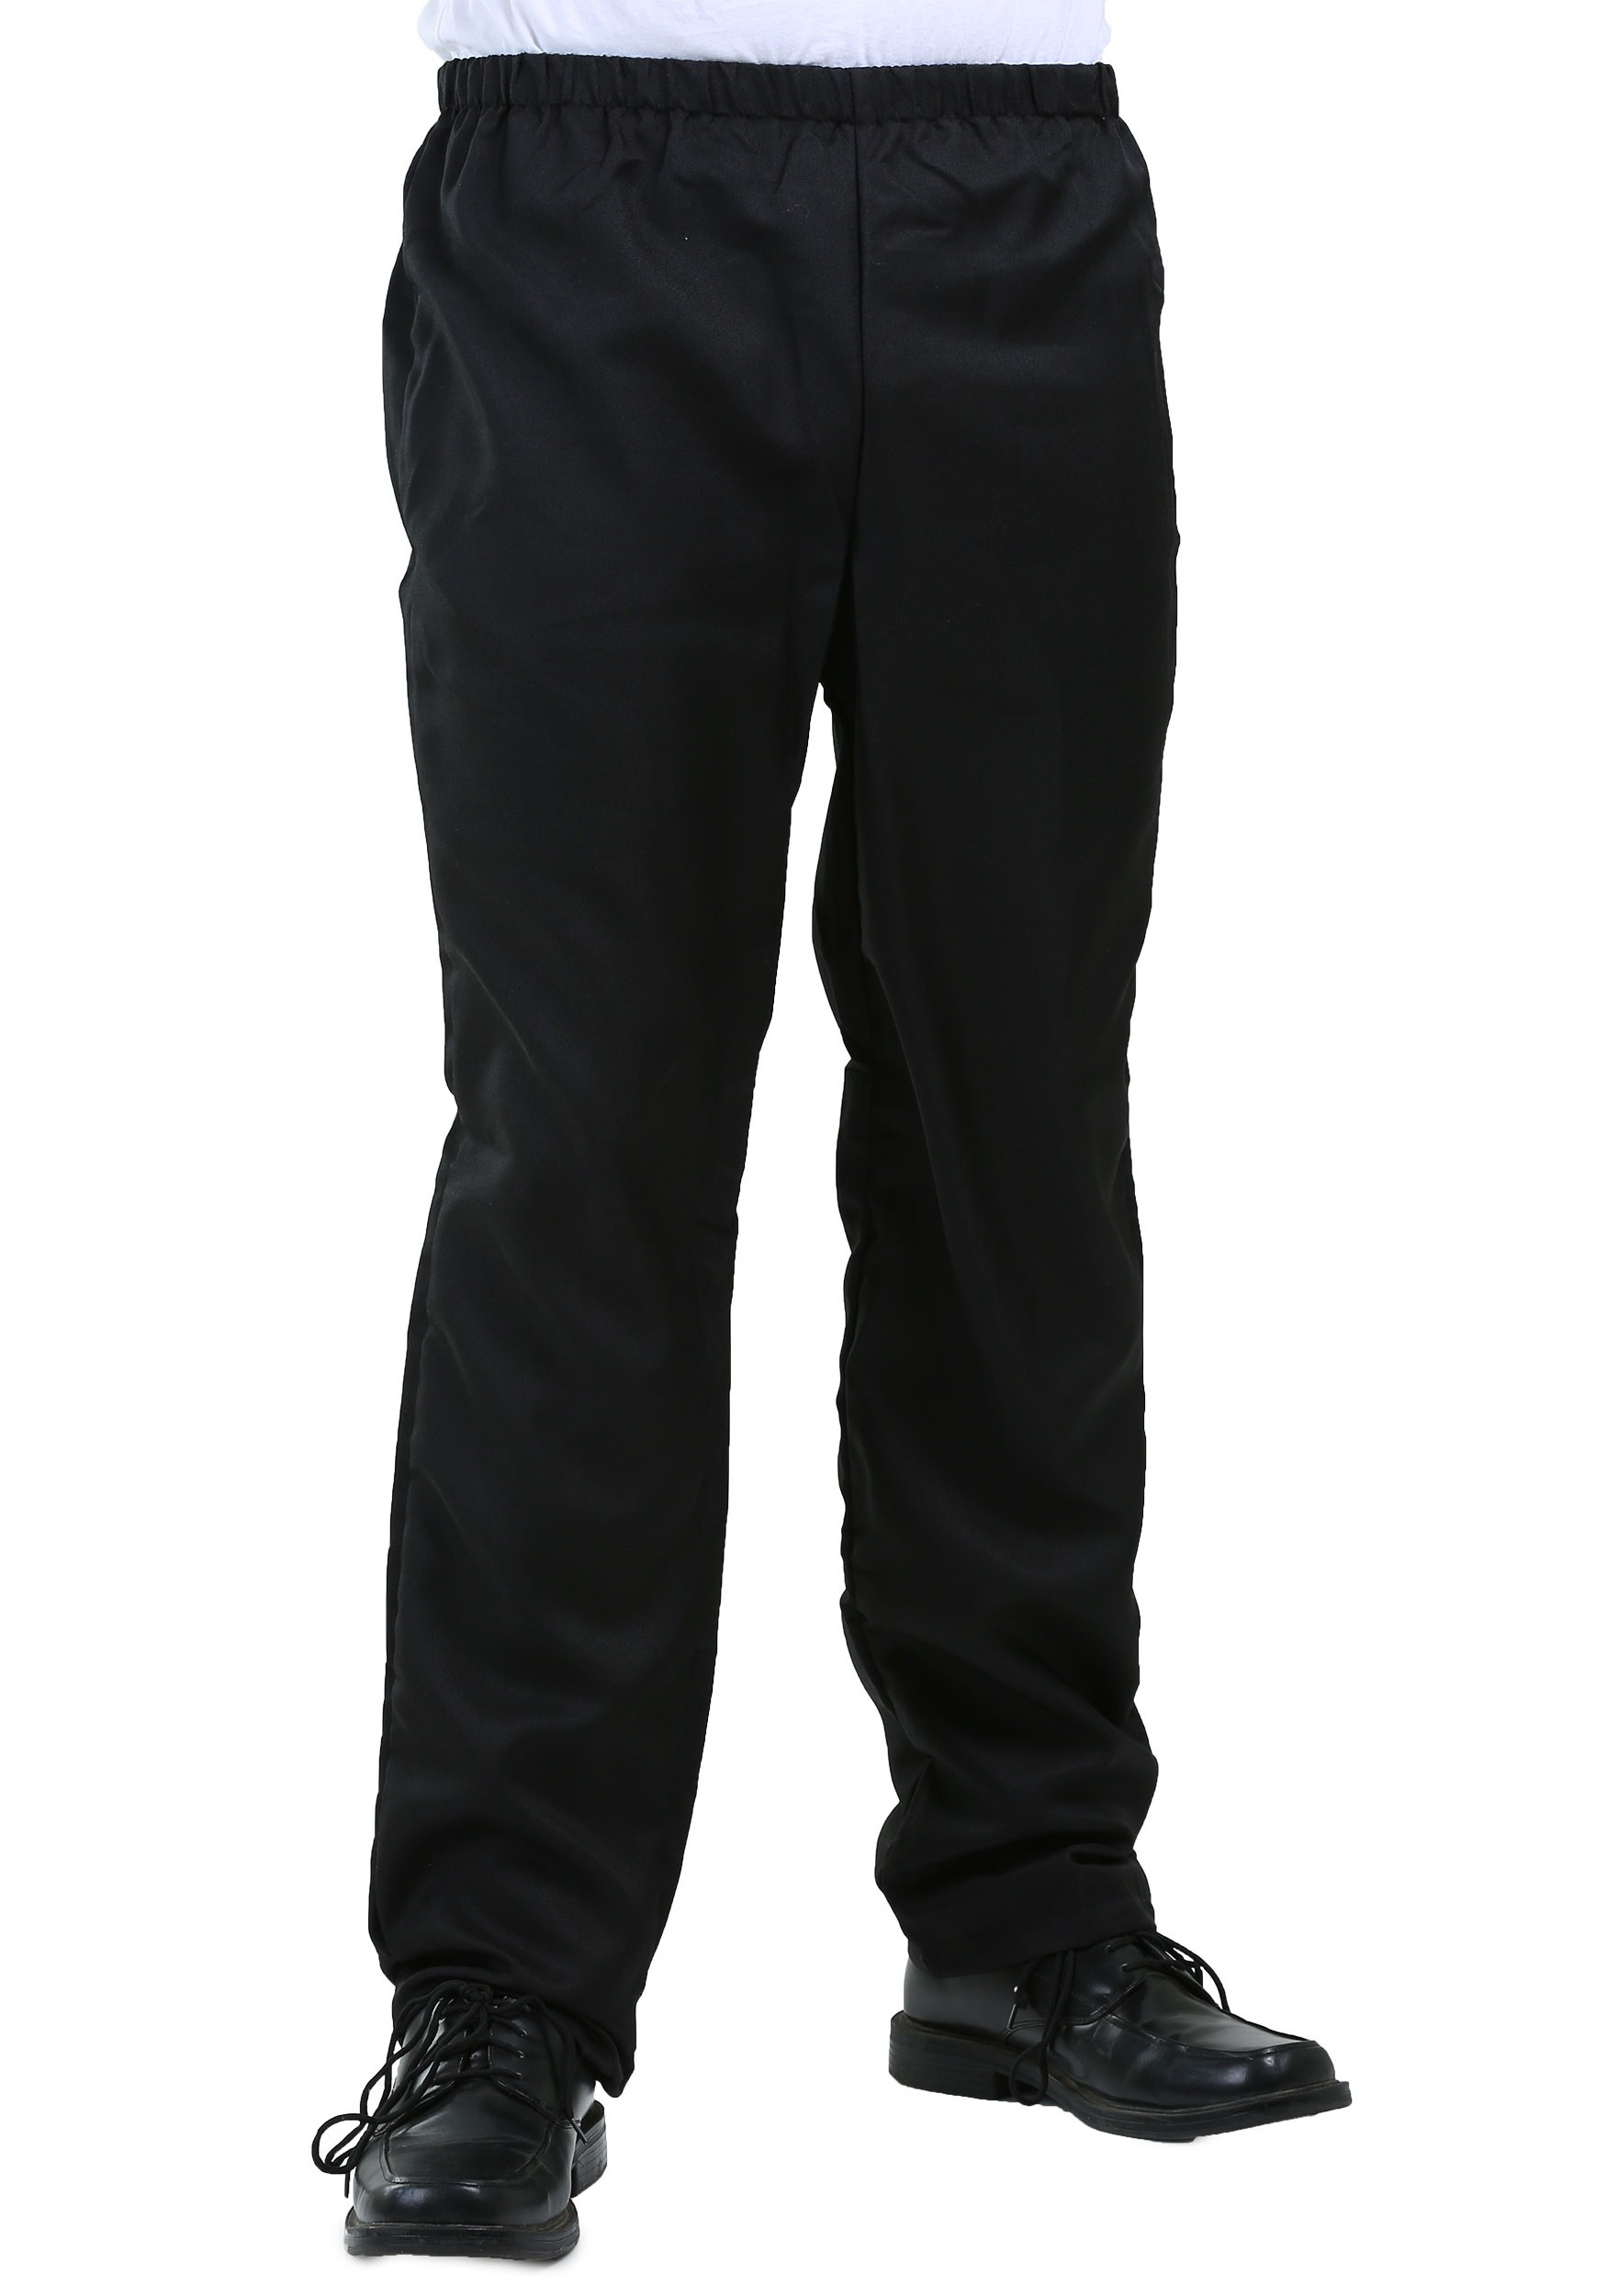 Stay on trend with men's black joggers. For everyday wear, Dockers pants for men are the ideal choice. When you're looking for an addition to your active wardrobe, shop our line of Under Armour workout pants for men.